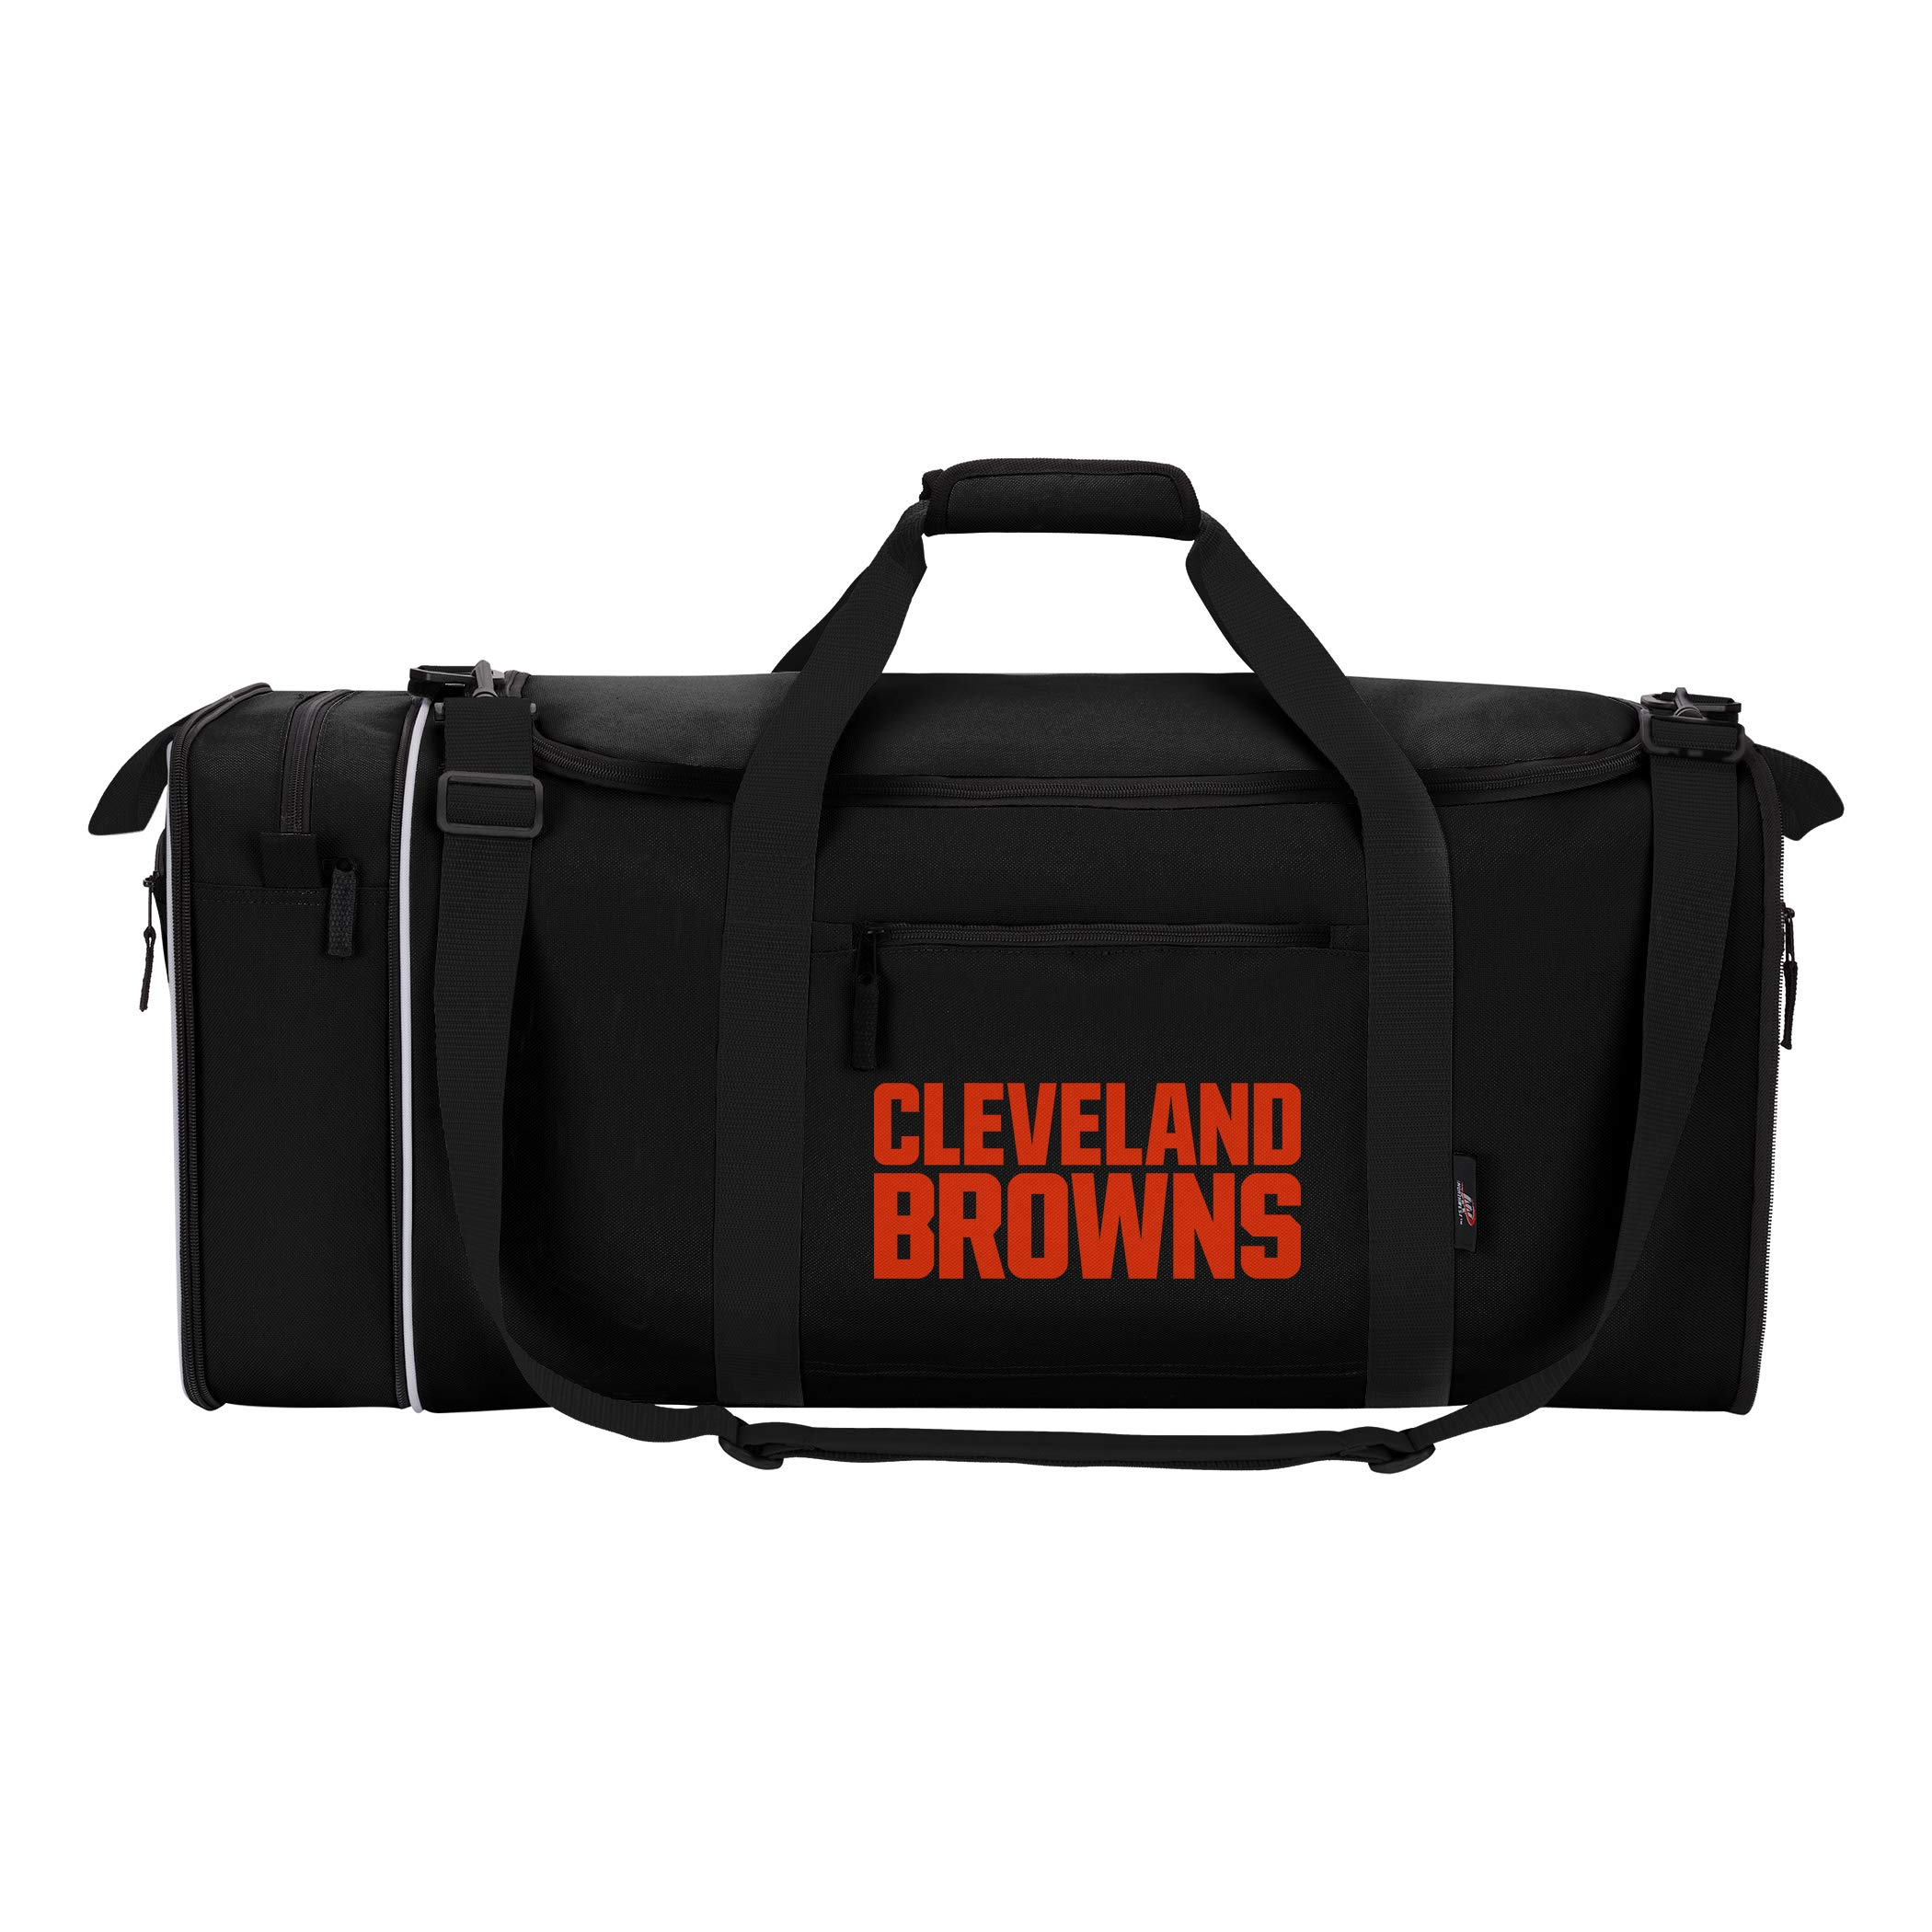 The Northwest Company NFL Cleveland Browns NFL Steal Duffel, Black, Measures 28'' in Length, 11'' in Width & 12'' in Height